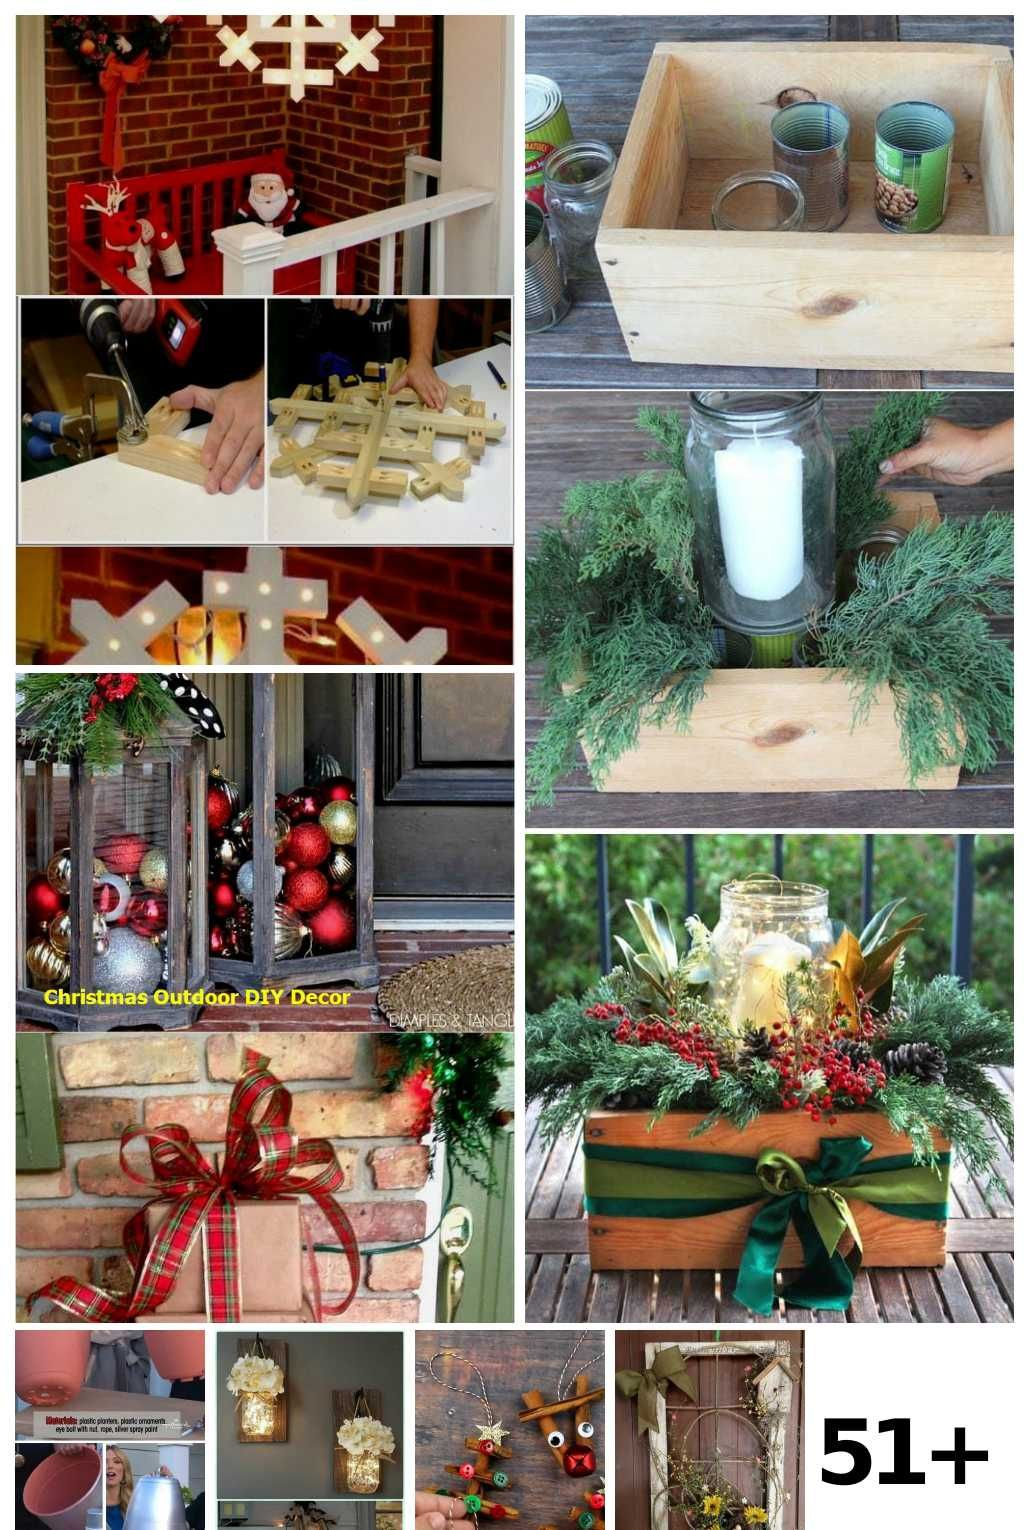 51 Christmas Garden Decor Diy Crafts Ideas In 2020 Christmas Garden Decorations Patio Decor Outdoor Diy Projects